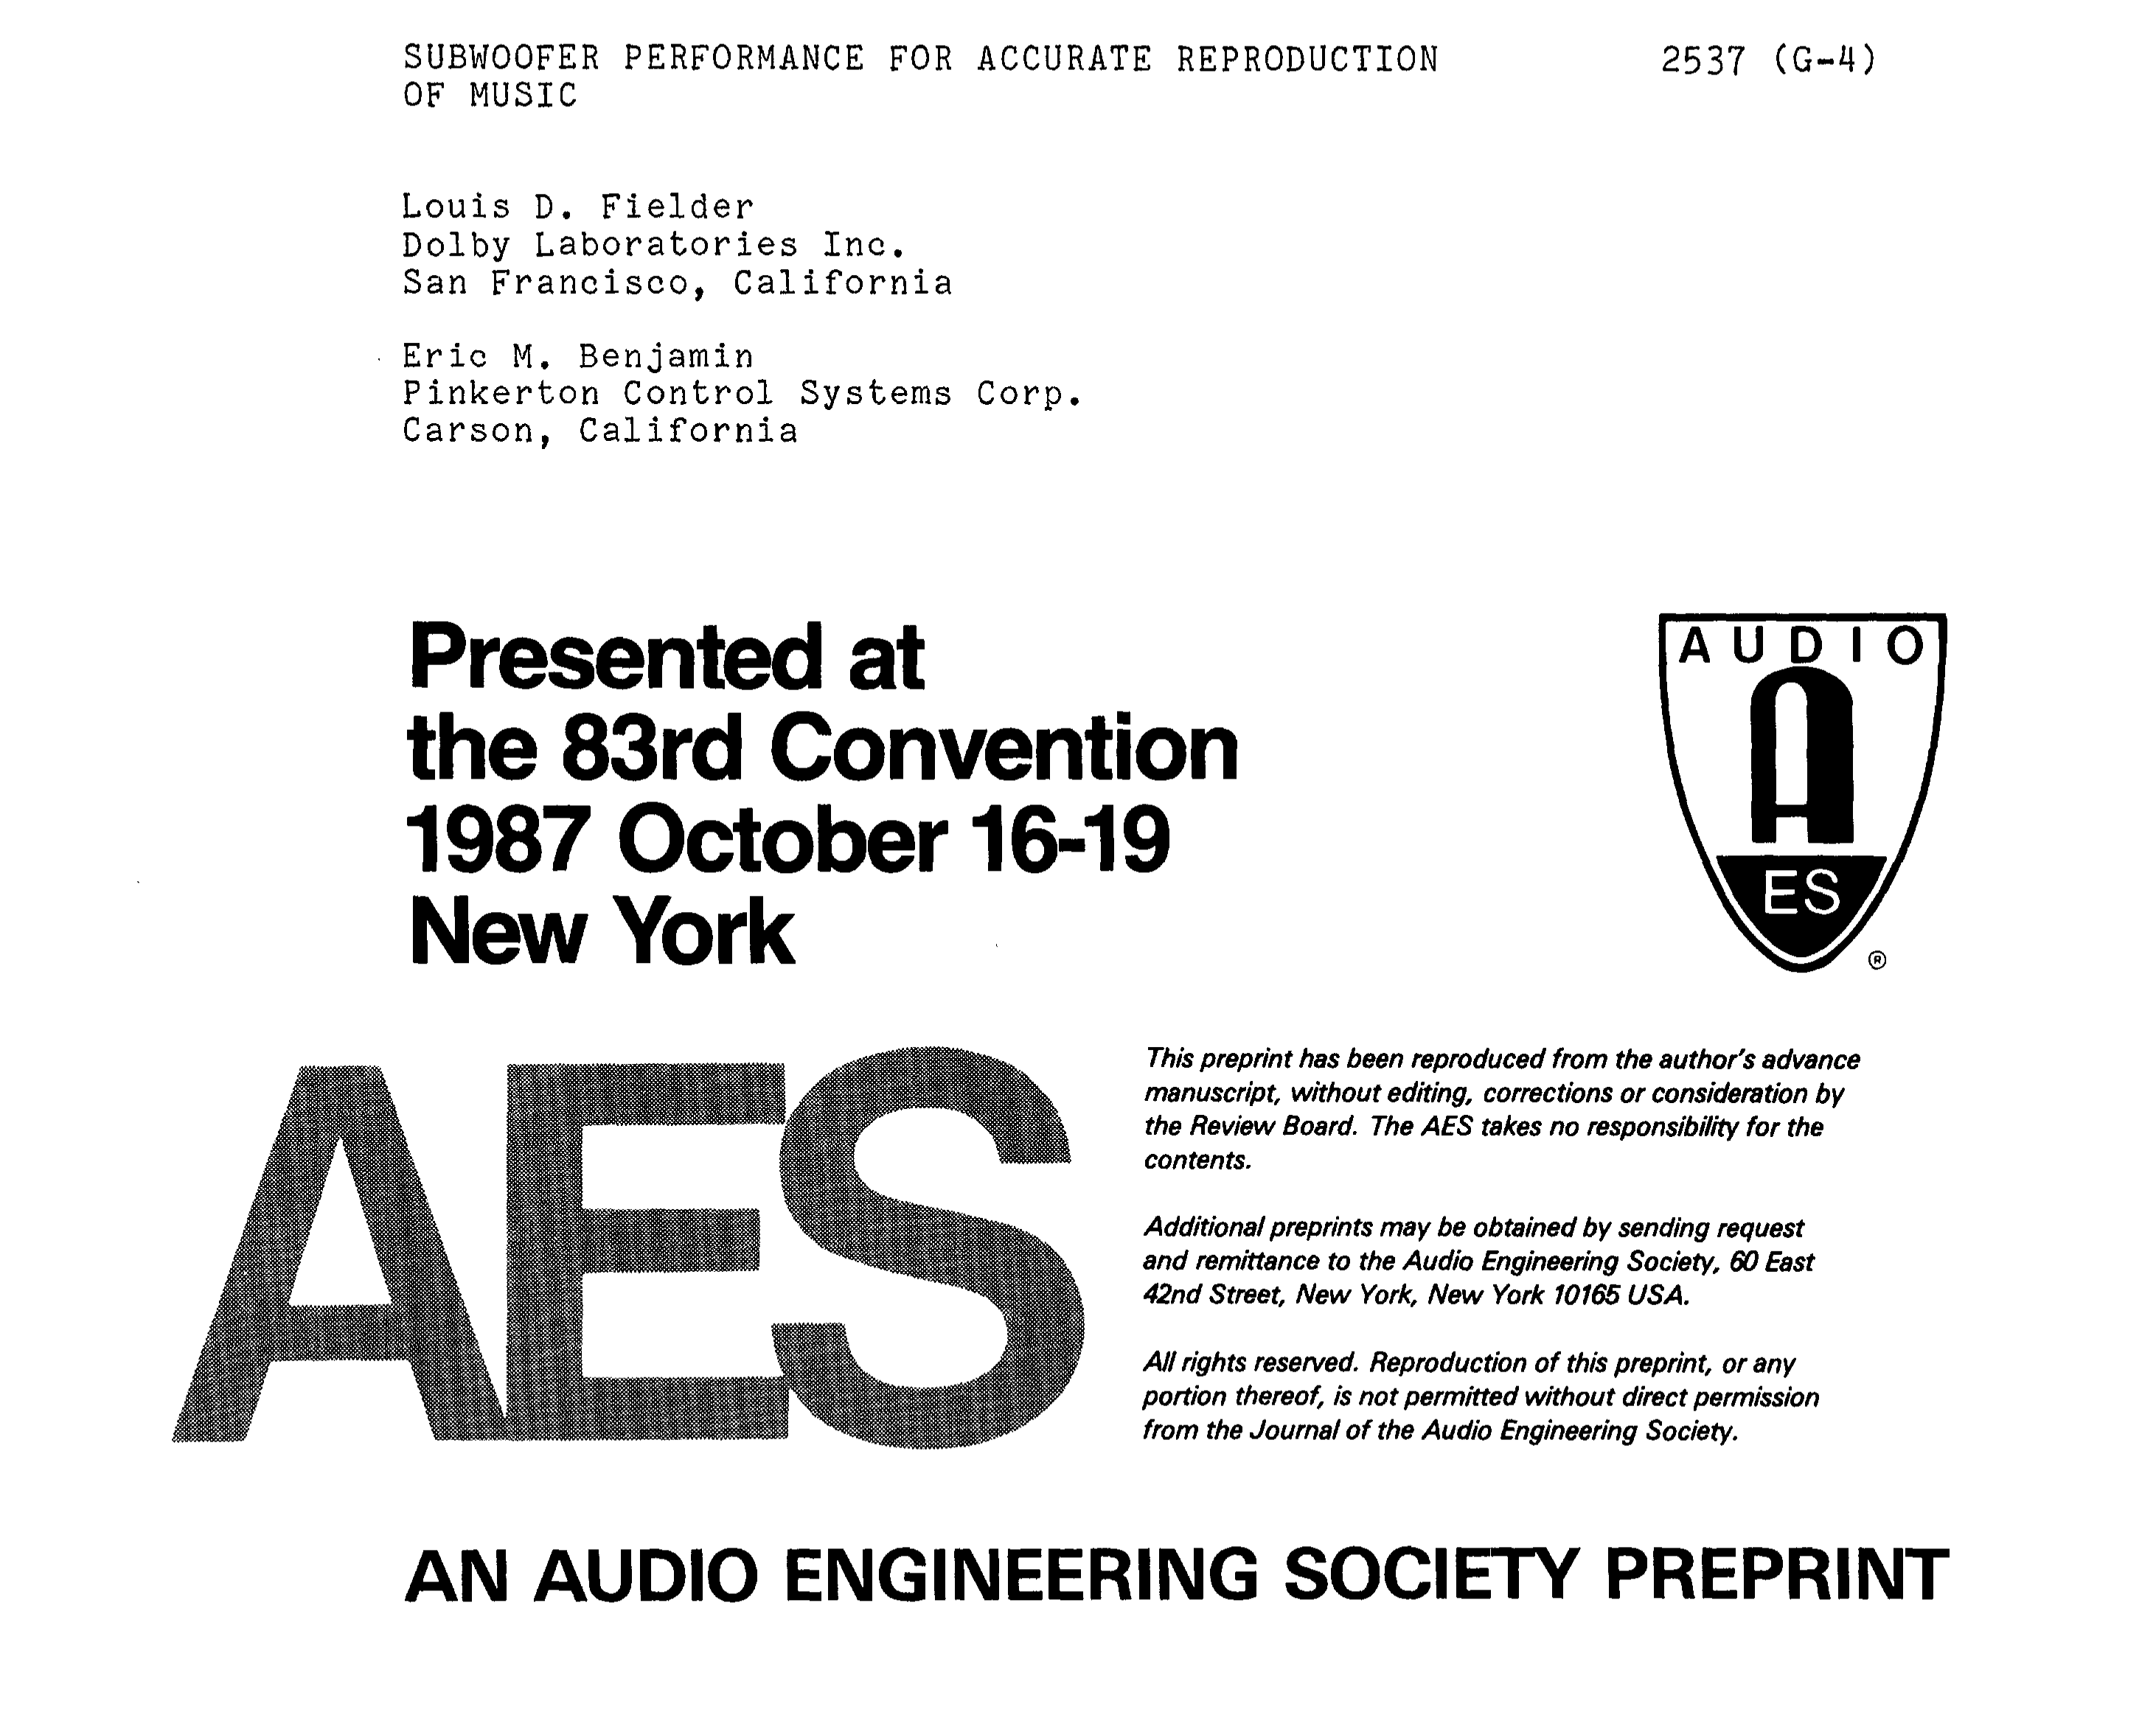 Aes E Library Subwoofer Performance For Accurate Reproduction Of Music Midrange Coustic Ca Sp 300 Mid